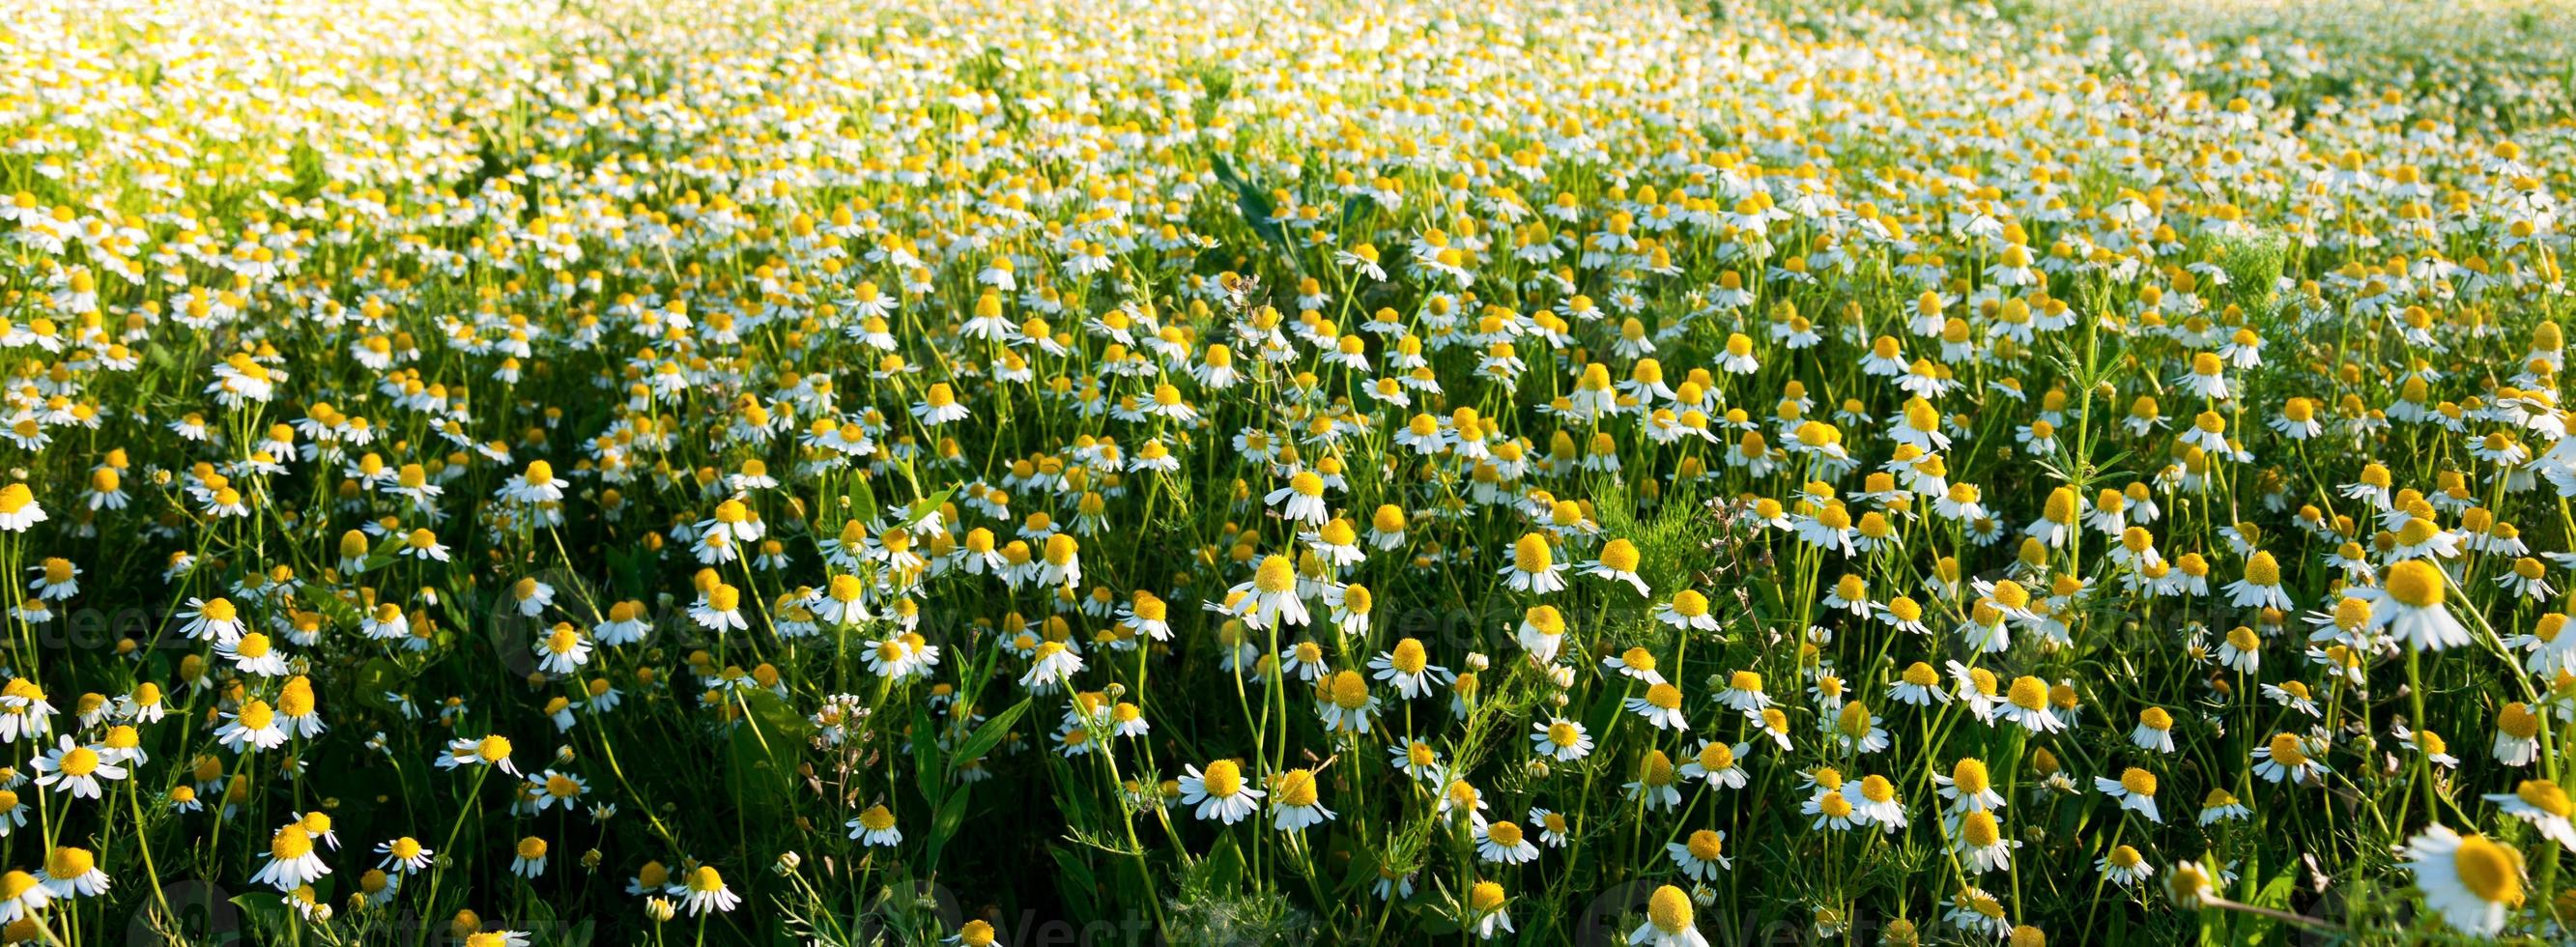 Field of camomile flowers. Flower texture photo